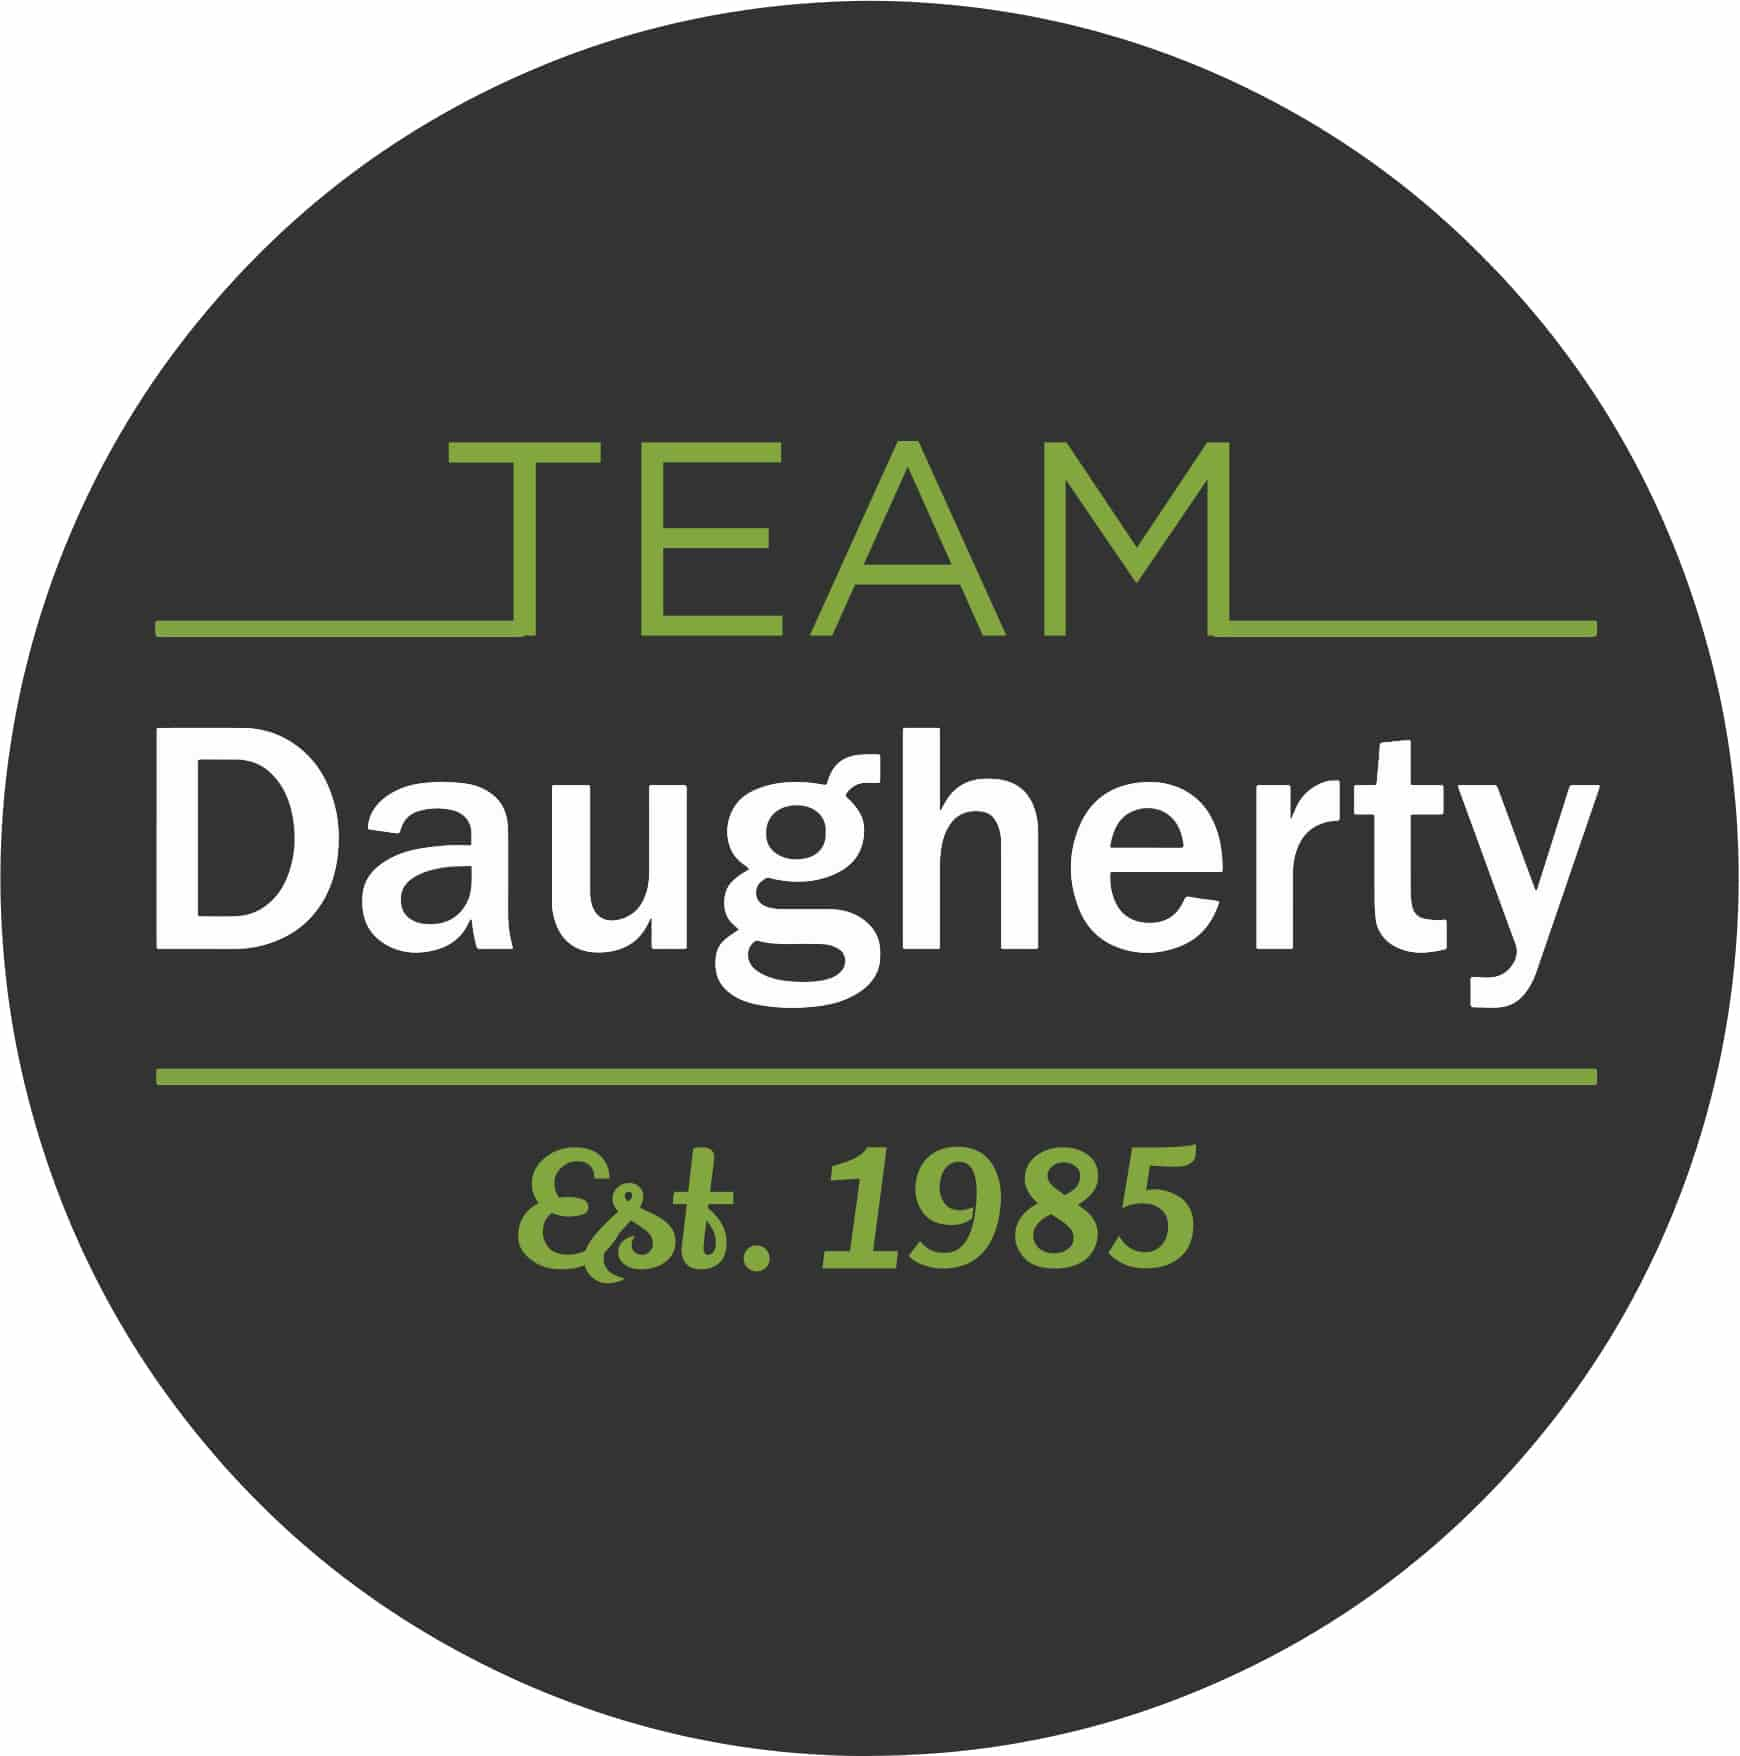 Team Daugherty